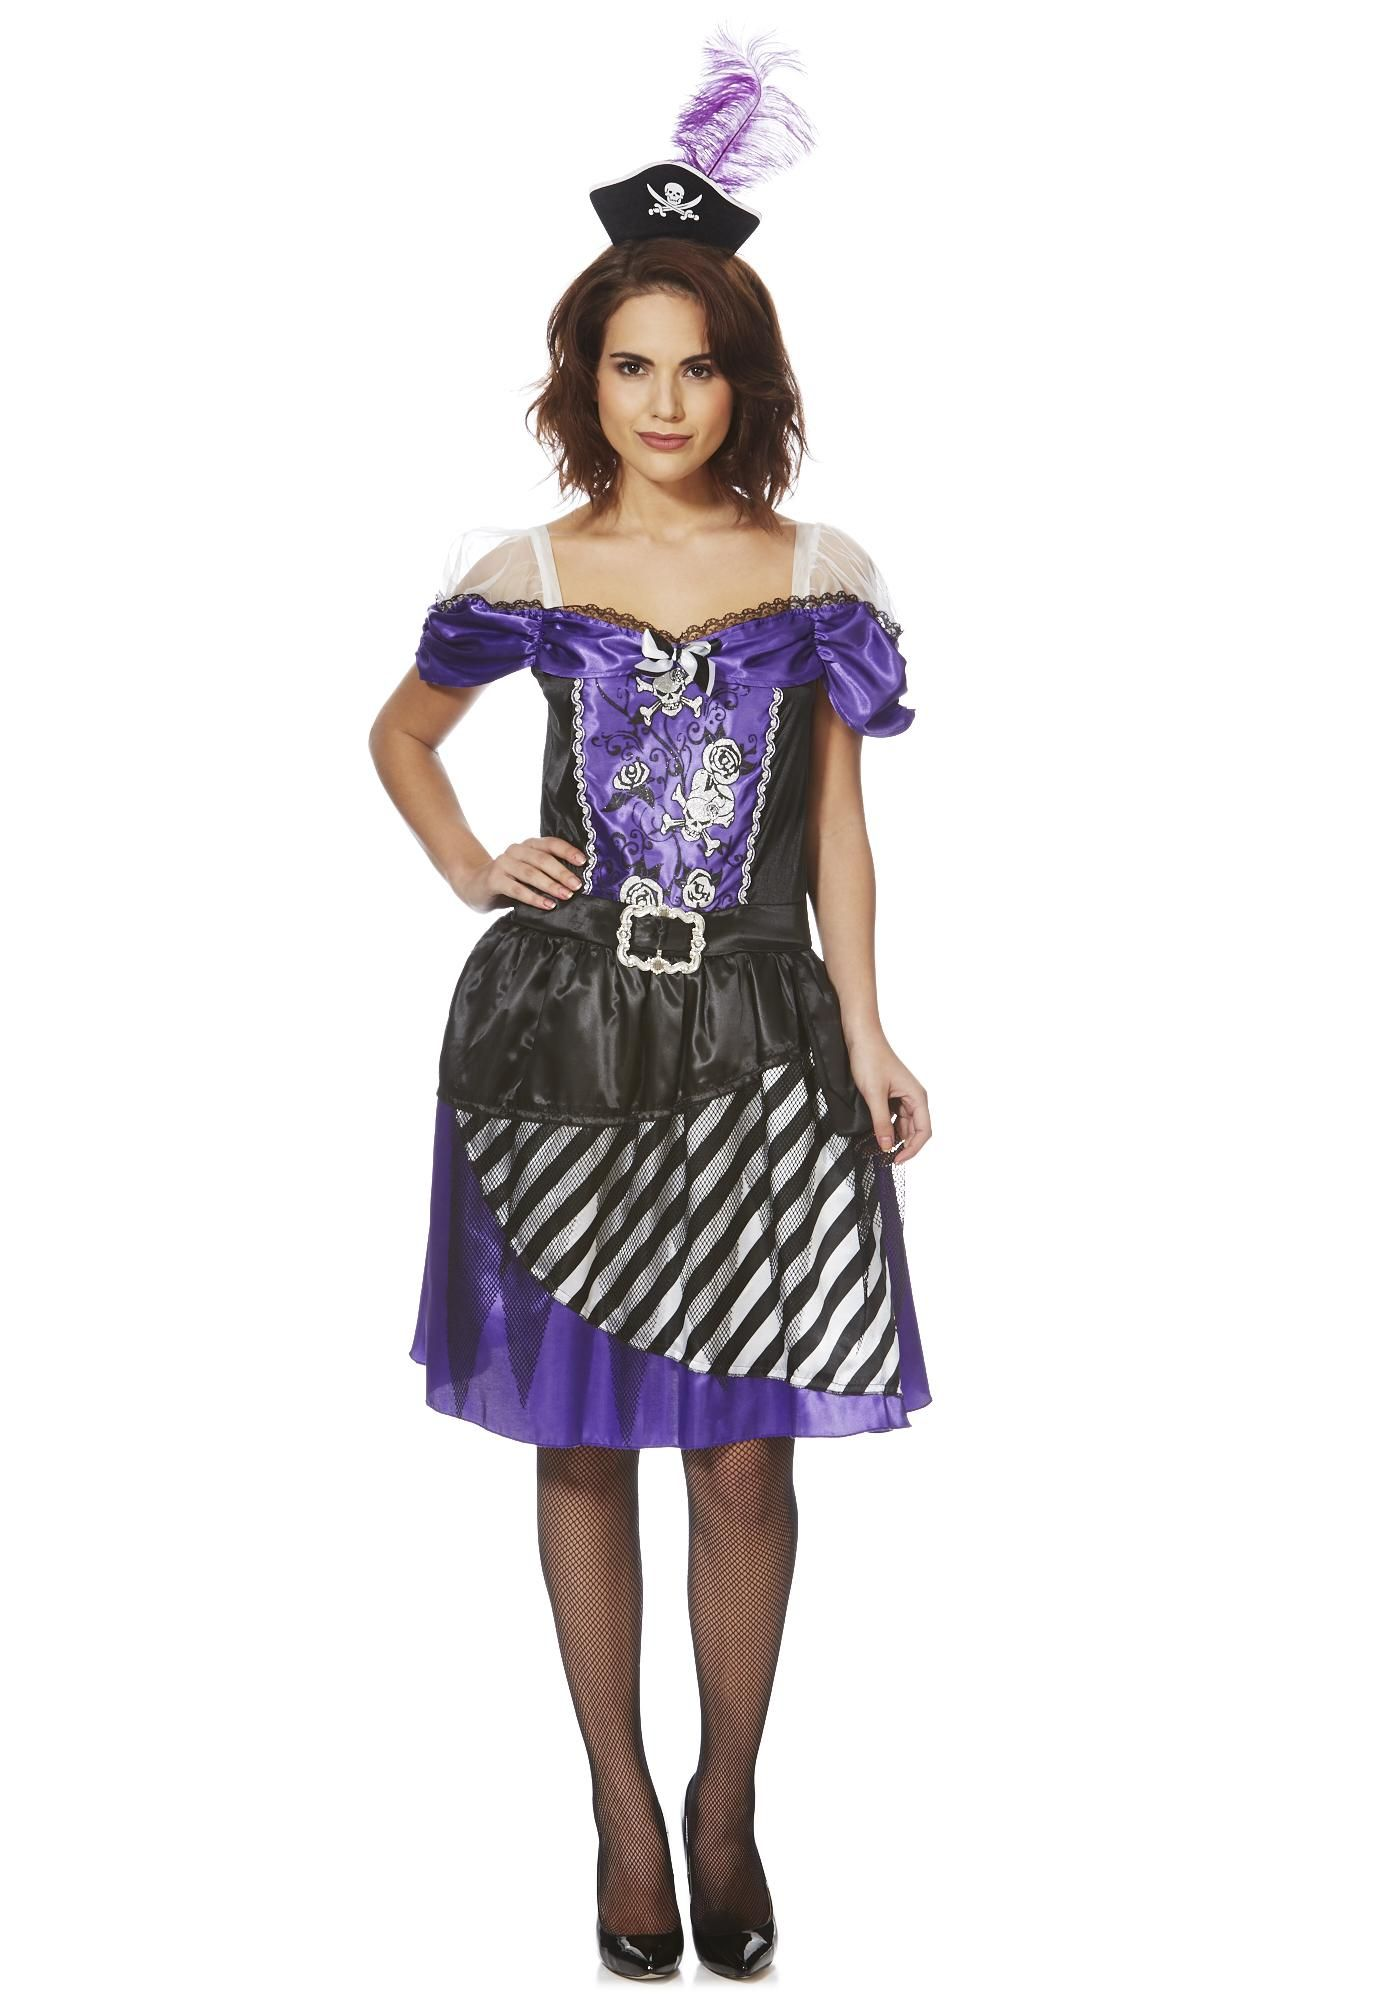 Tesco F&F Halloween Pirate Lady DressUp Costume €16 €20